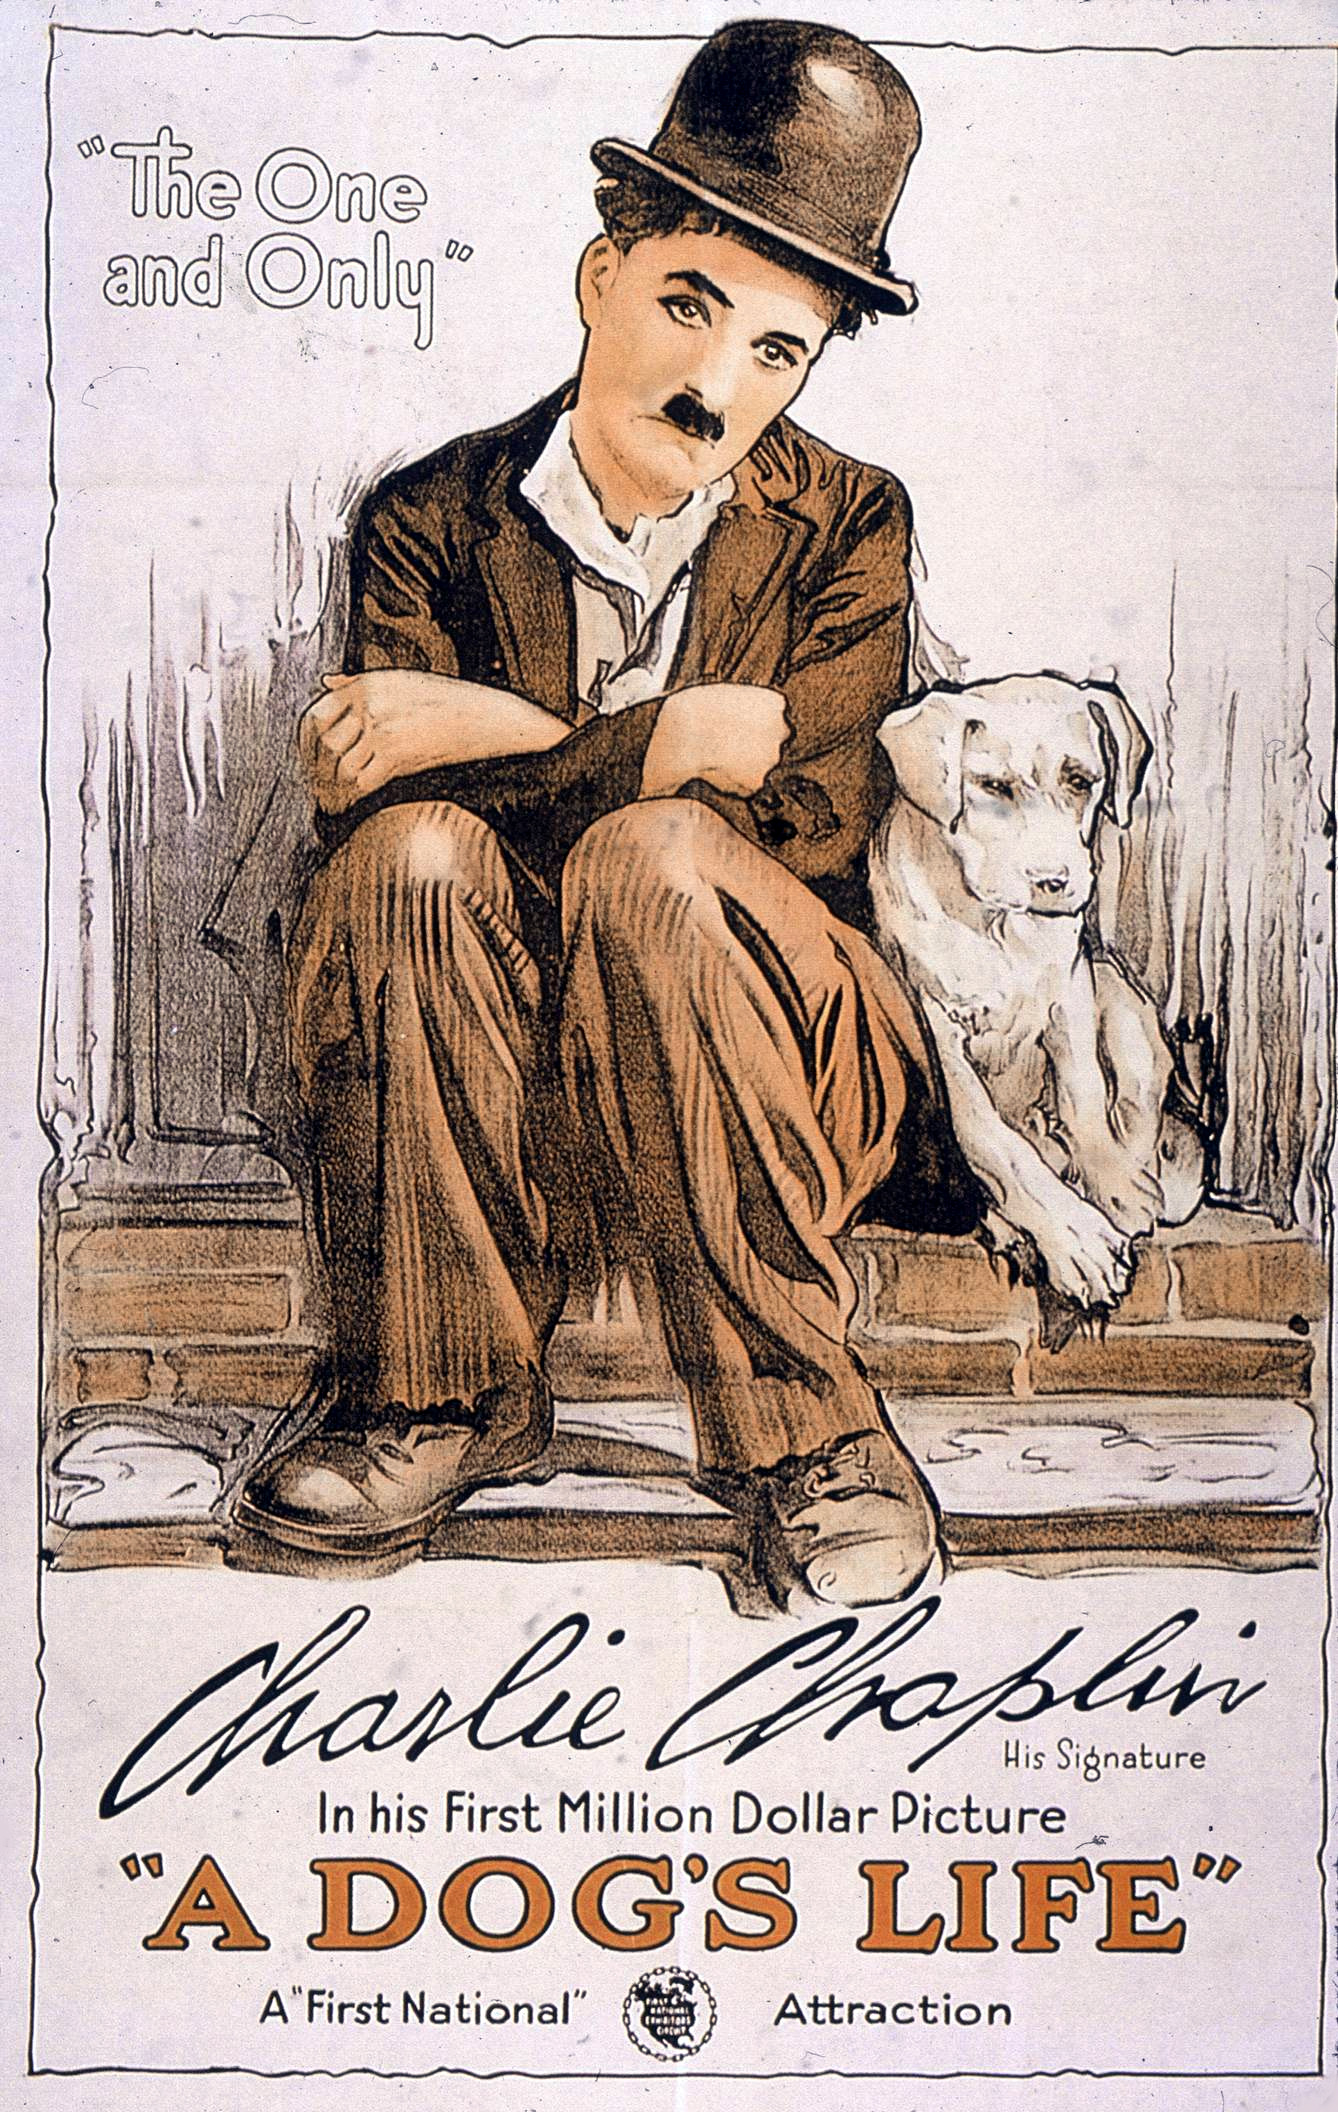 A dog's life, Chaplin movie